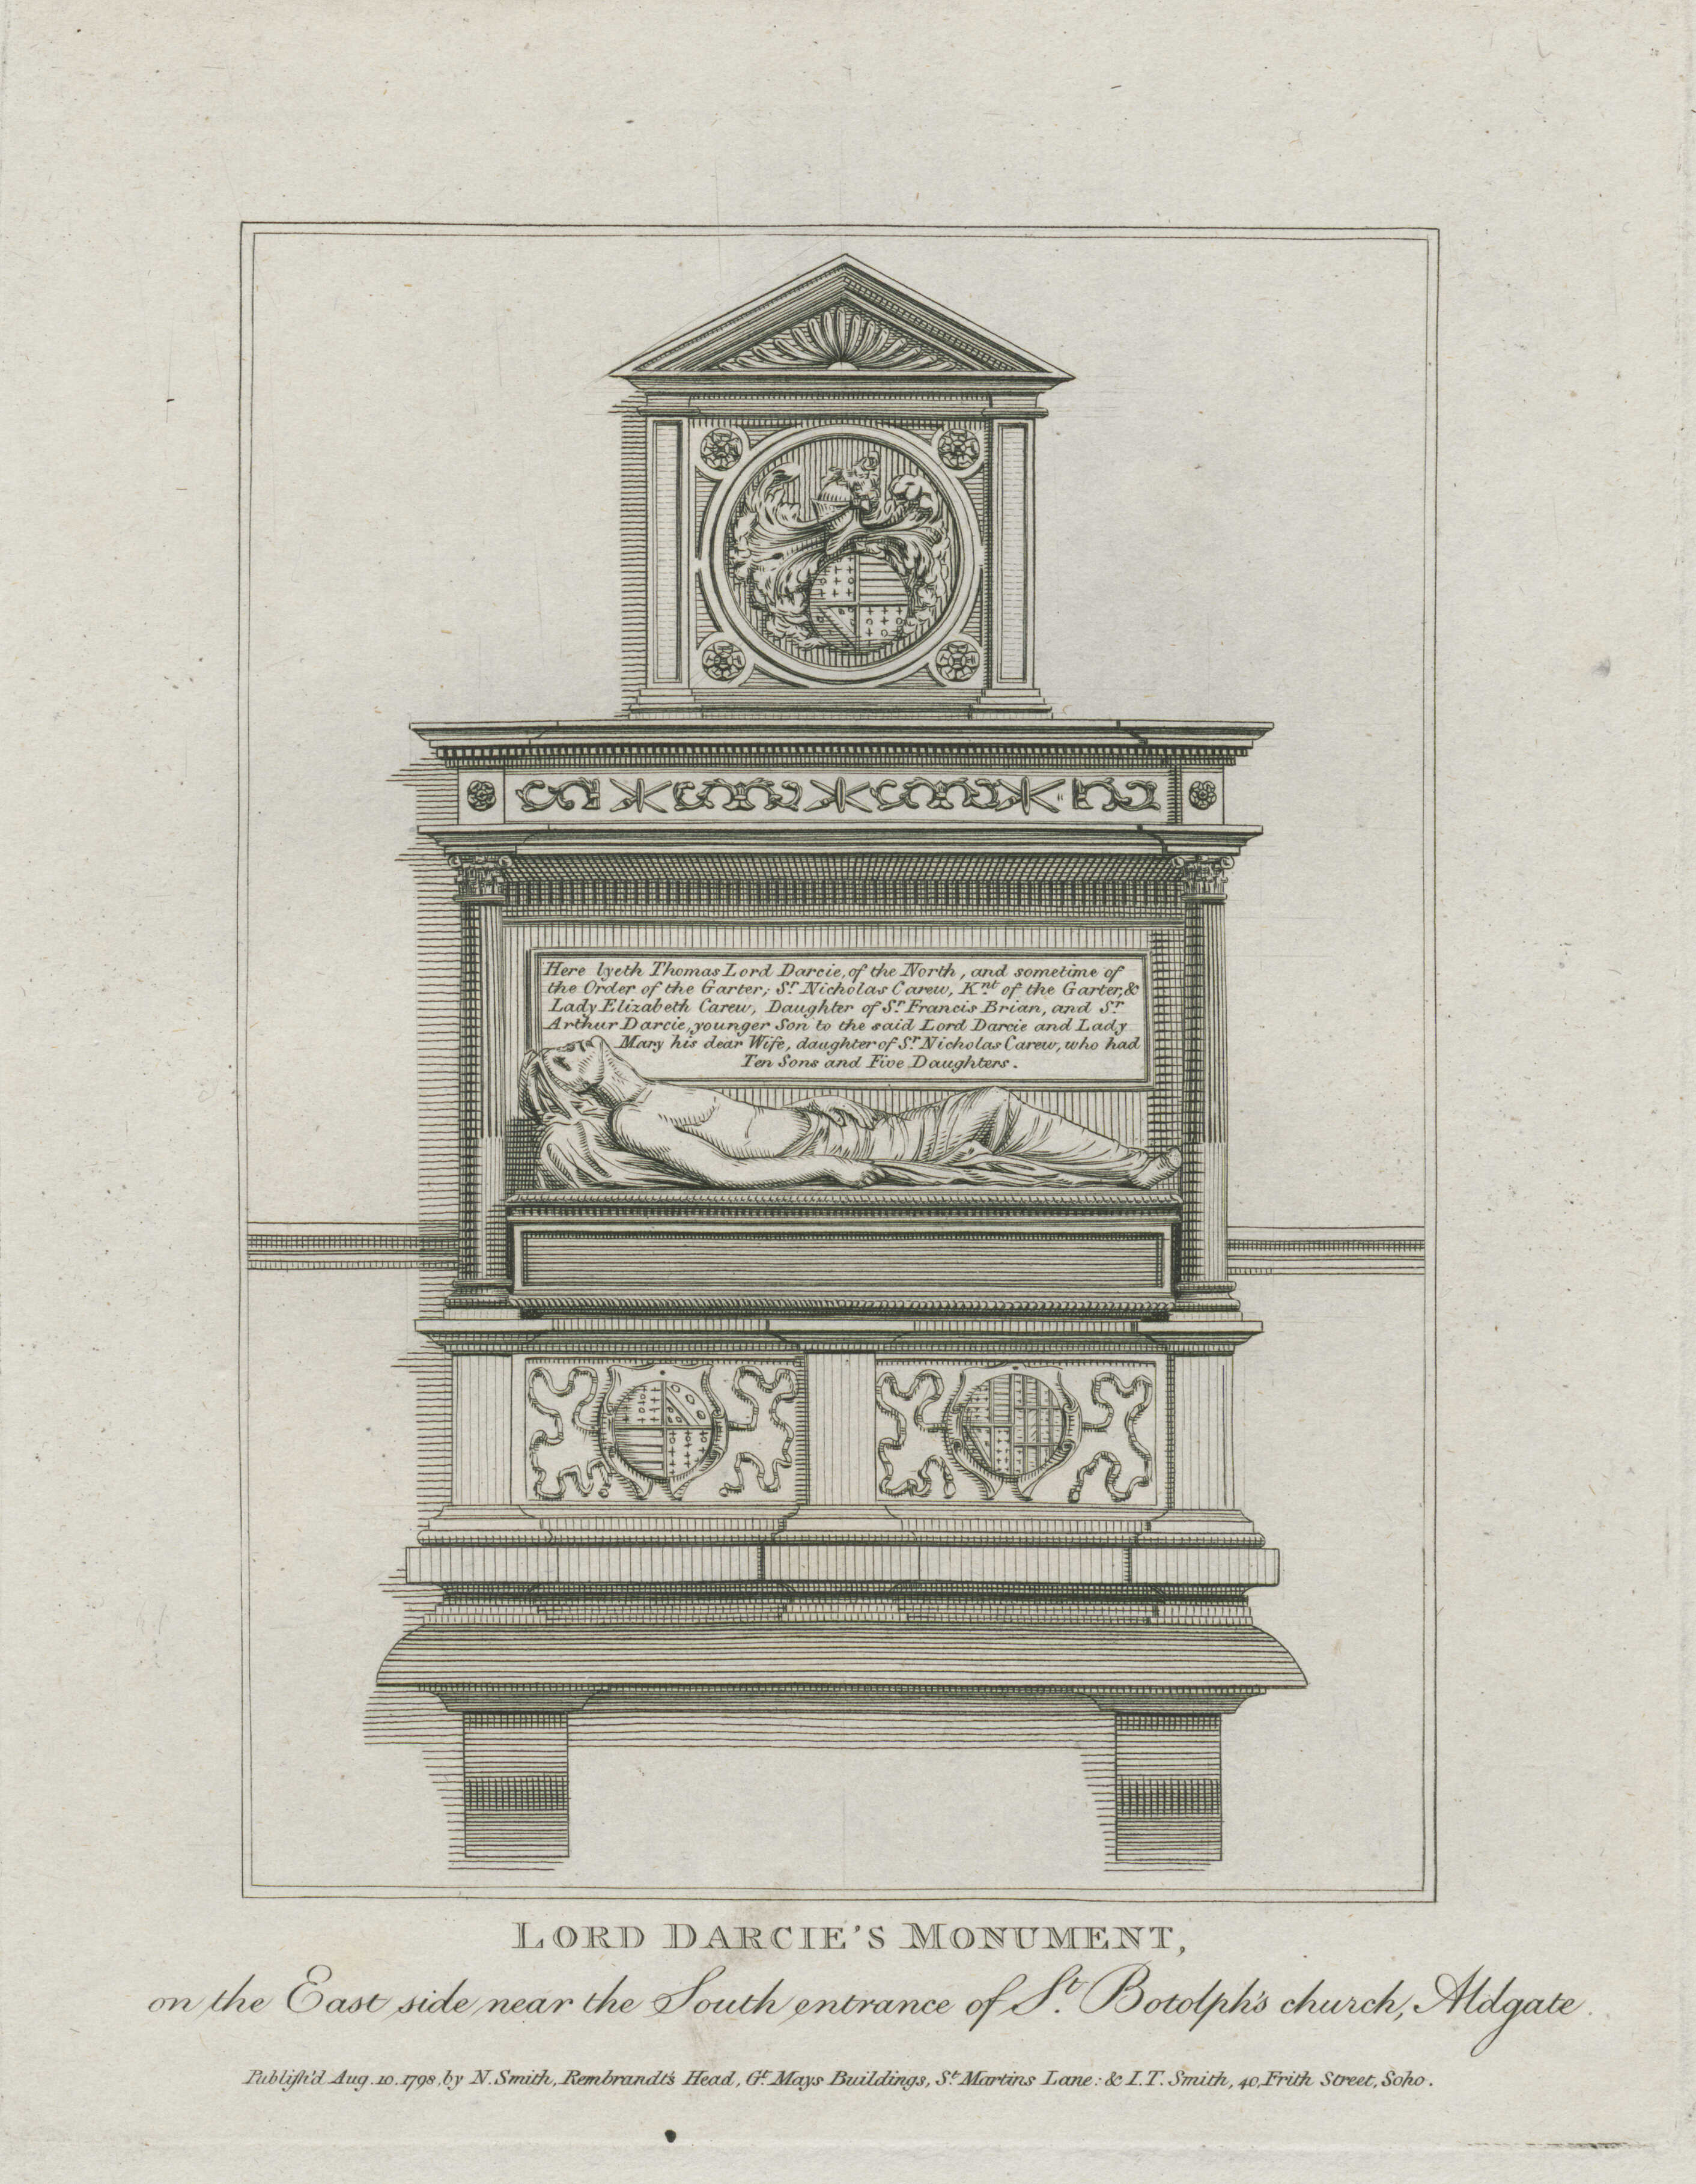 66-lord-darcies-monument-on-the-east-side-near-the-south-entrance-of-st-botolphs-church-aldgate